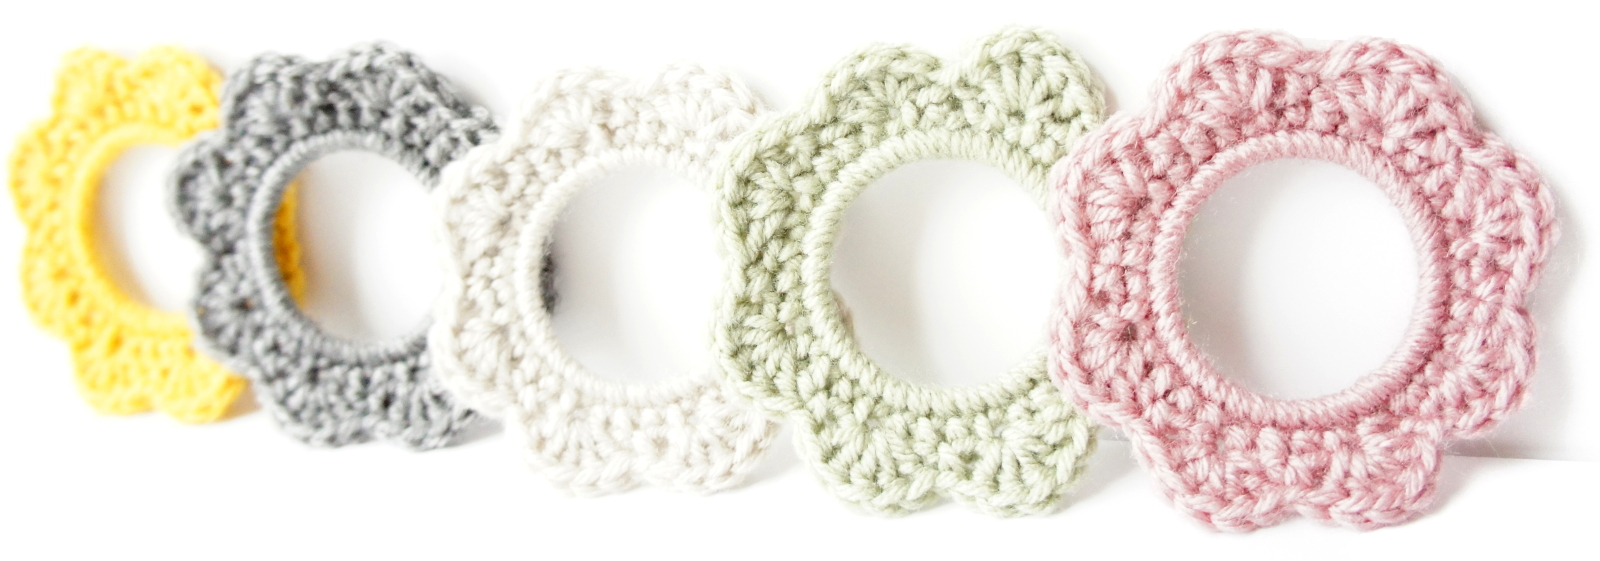 Contemporary Crochet Patterns